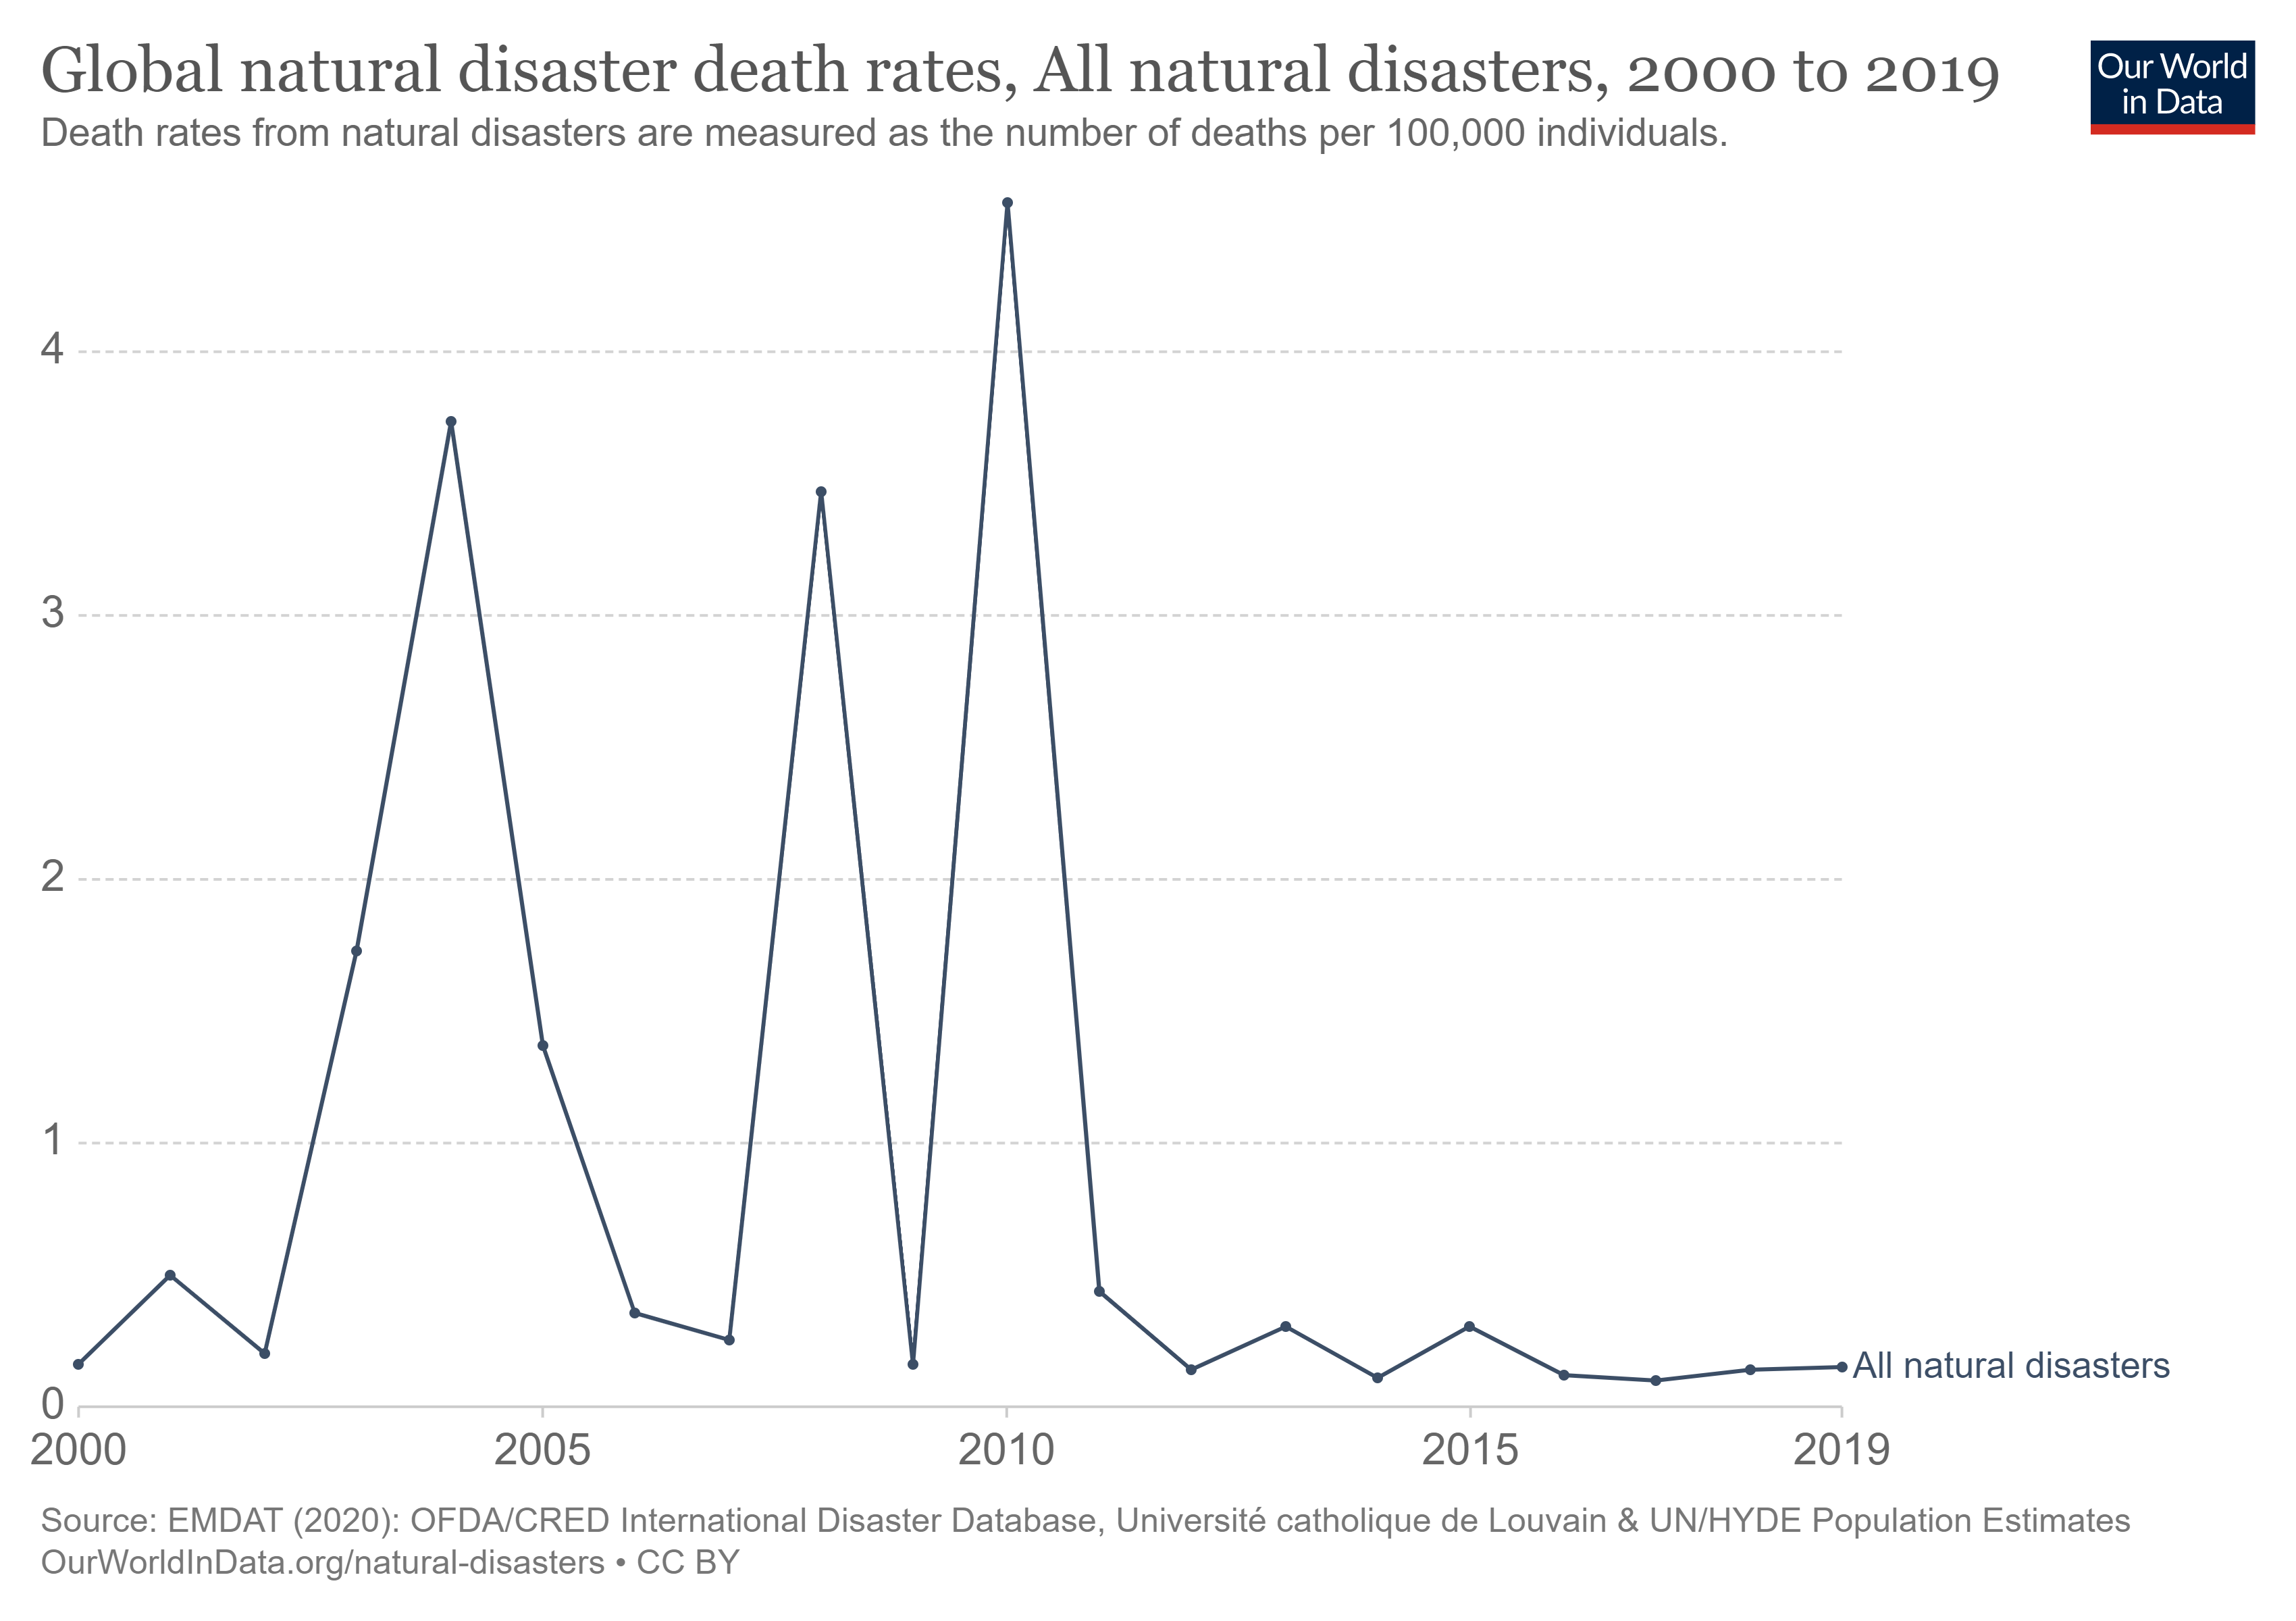 line graph showing global death rate due to natural disasters from 2000 to 2019. Source, our world in data. there are several sharp ups and downs in the graph. death rate peaked once around 2004, then again around 2008, then attained highest peak in 2010. there is a huge decline in the death rate since.